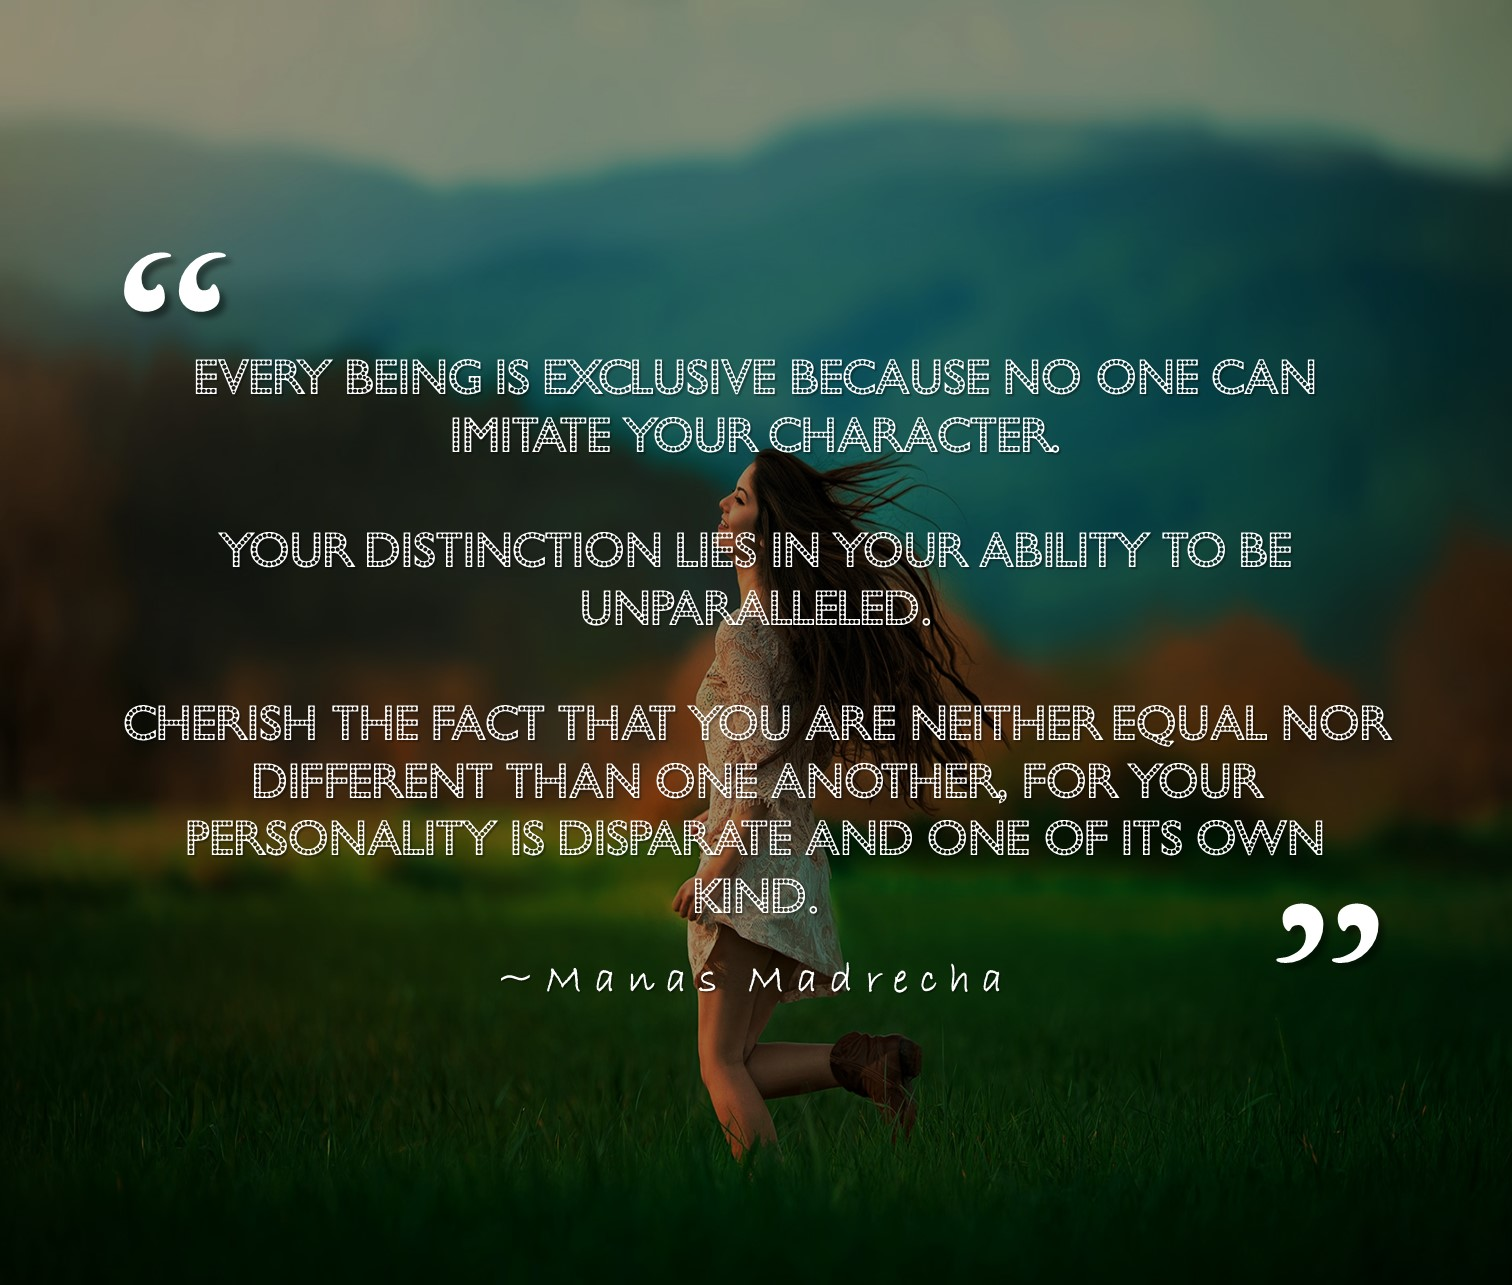 be yourself quote, being yourself, Manas Madrecha, girl in forest, happy girl in nature, girl running in forest, girl running wallpaper, beautiful girl in nature, every human being is unique, Manas Madrecha quotes, Manas Madrecha stories, simplifying universe, inspirational story, inspirational quotes, quotes on being yourself, standing apart from the crowd, dare to be different